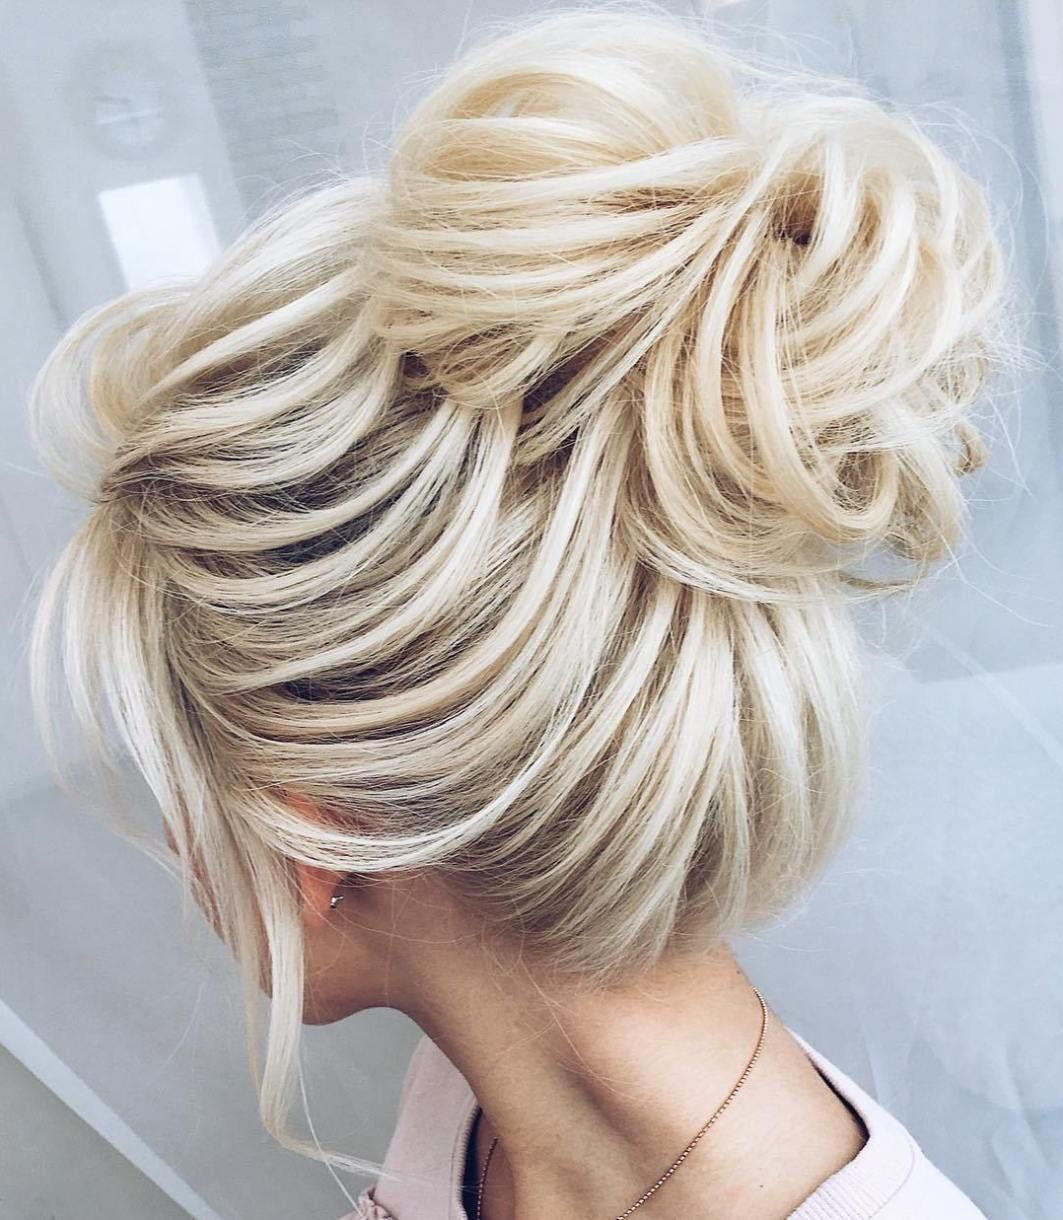 14+ Top knot hairstyle girl ideas in 2021